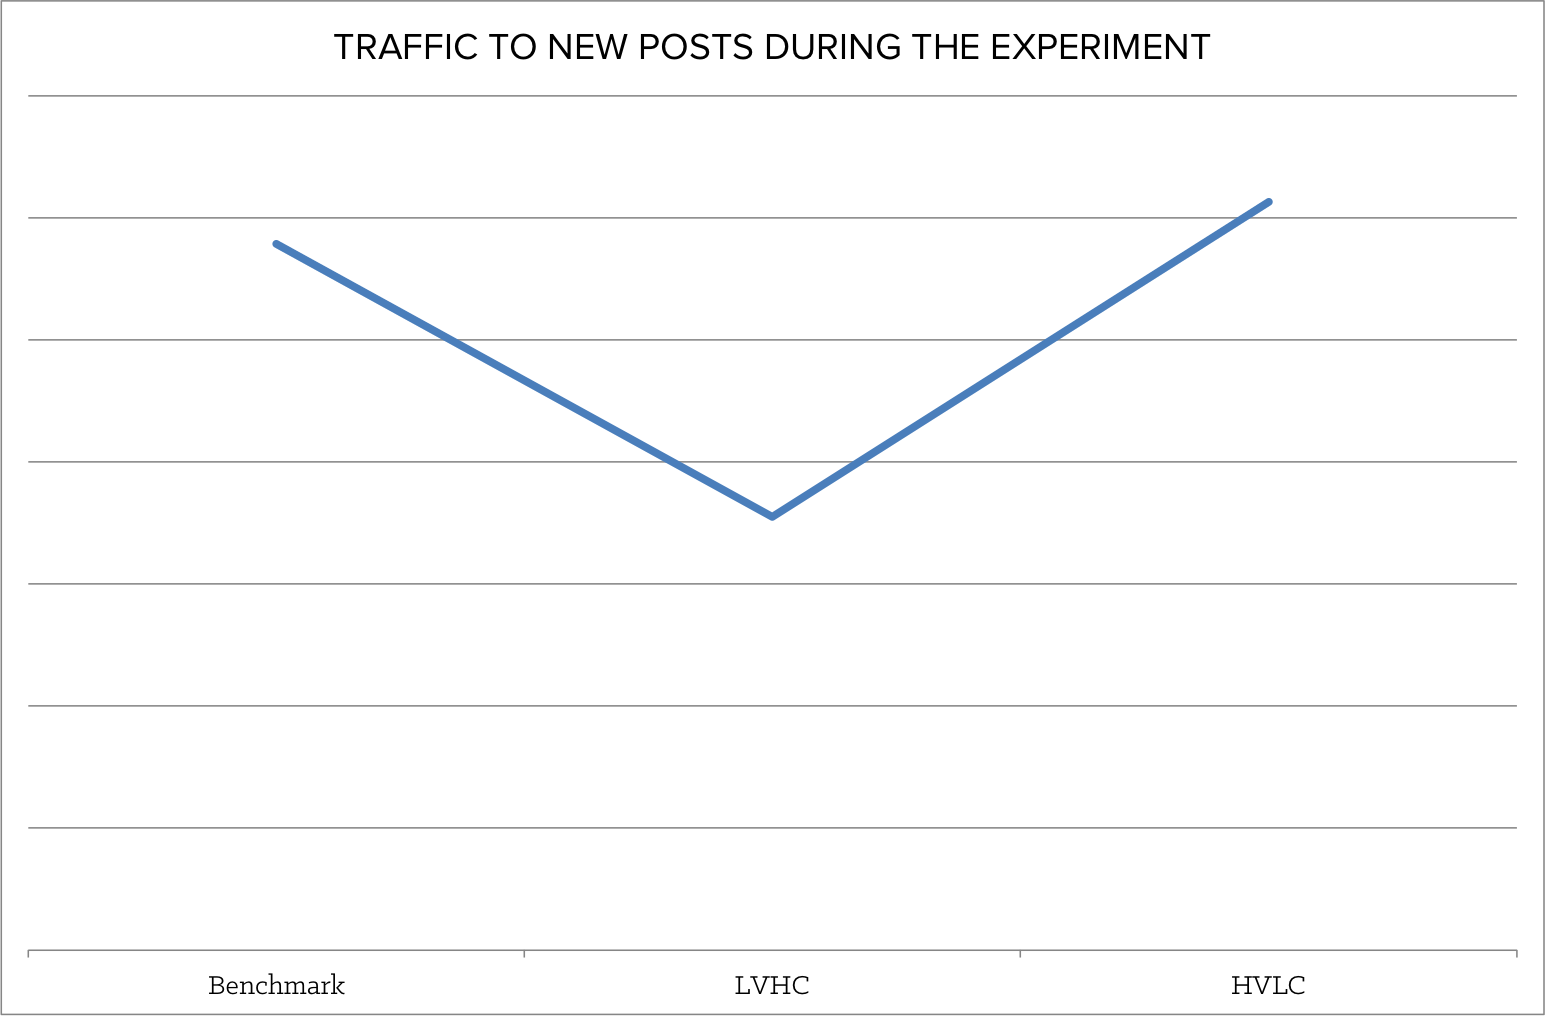 traffic_to_new_posts_during_part_1-1